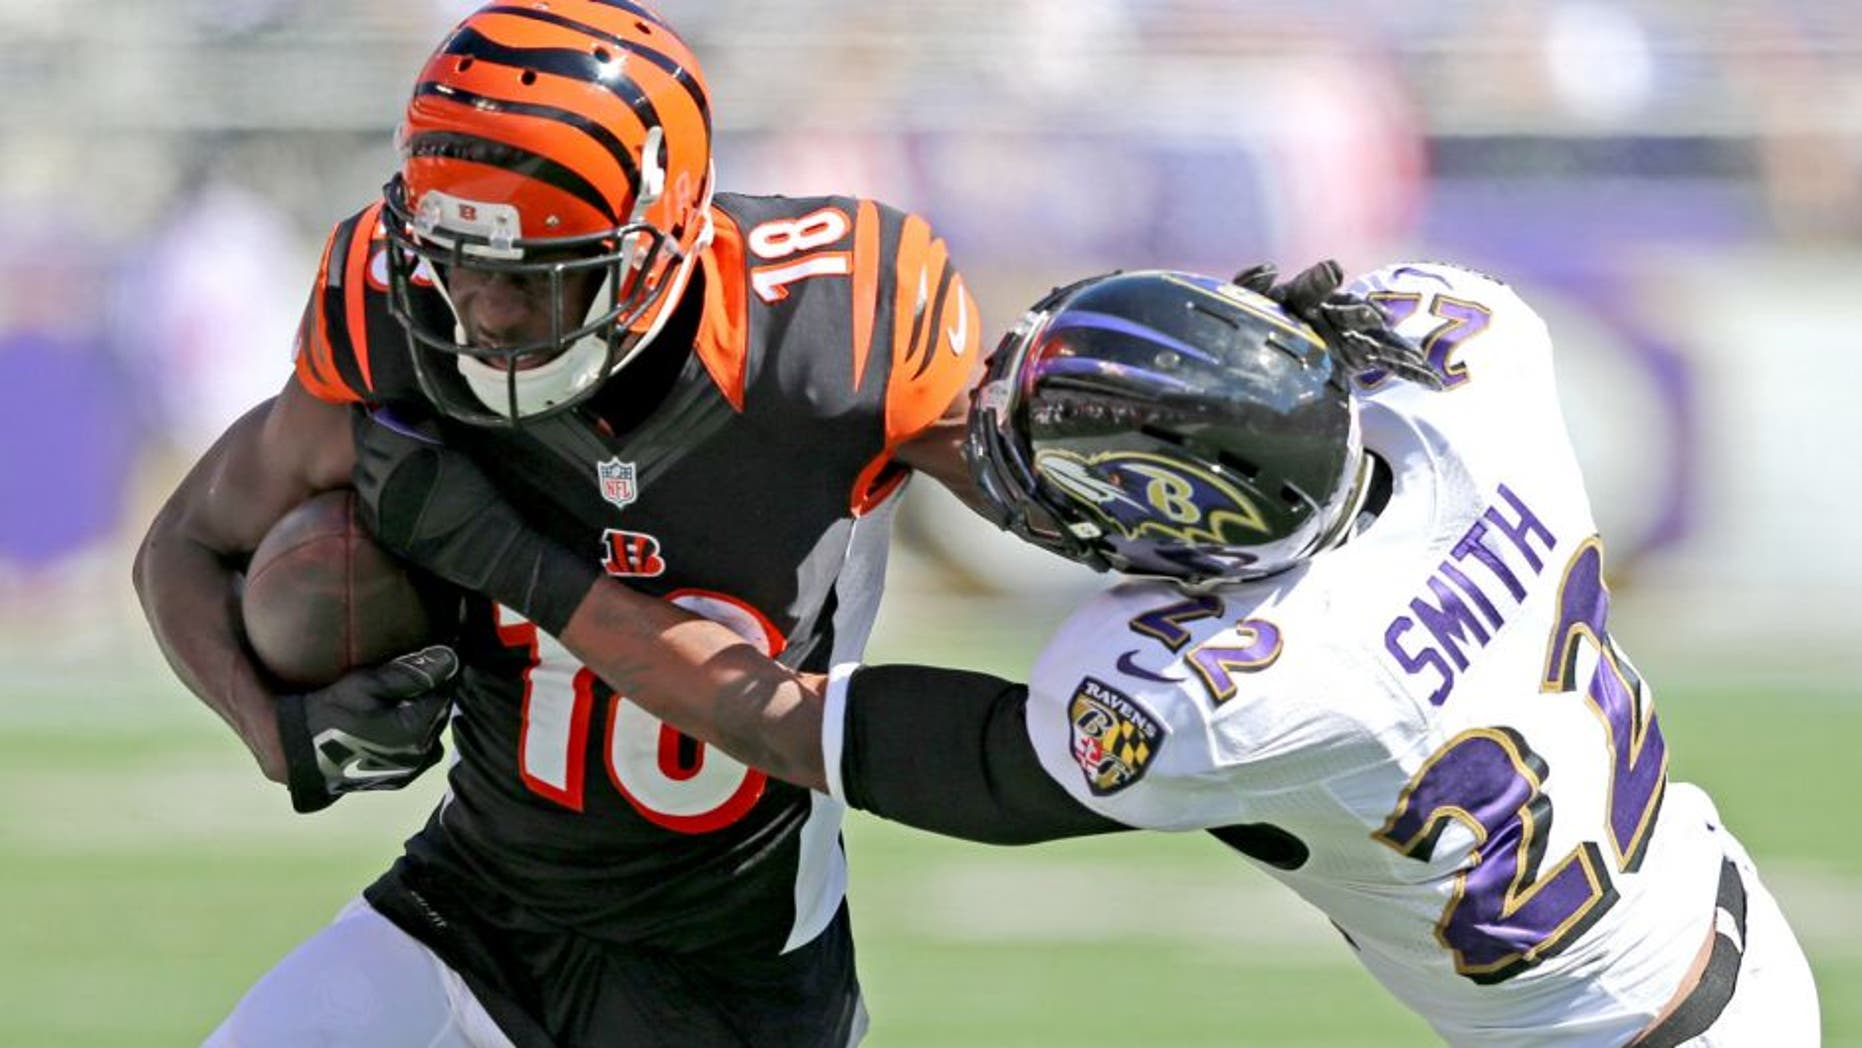 Sep 7, 2014; Baltimore, MD, USA; Cincinnati Bengals wide receiver A.J. Green (18) is tackled after a catch by Baltimore Ravens cornerback Jimmy Smith (22) at M&T Bank Stadium. Mandatory Credit: Mitch Stringer-USA TODAY Sports